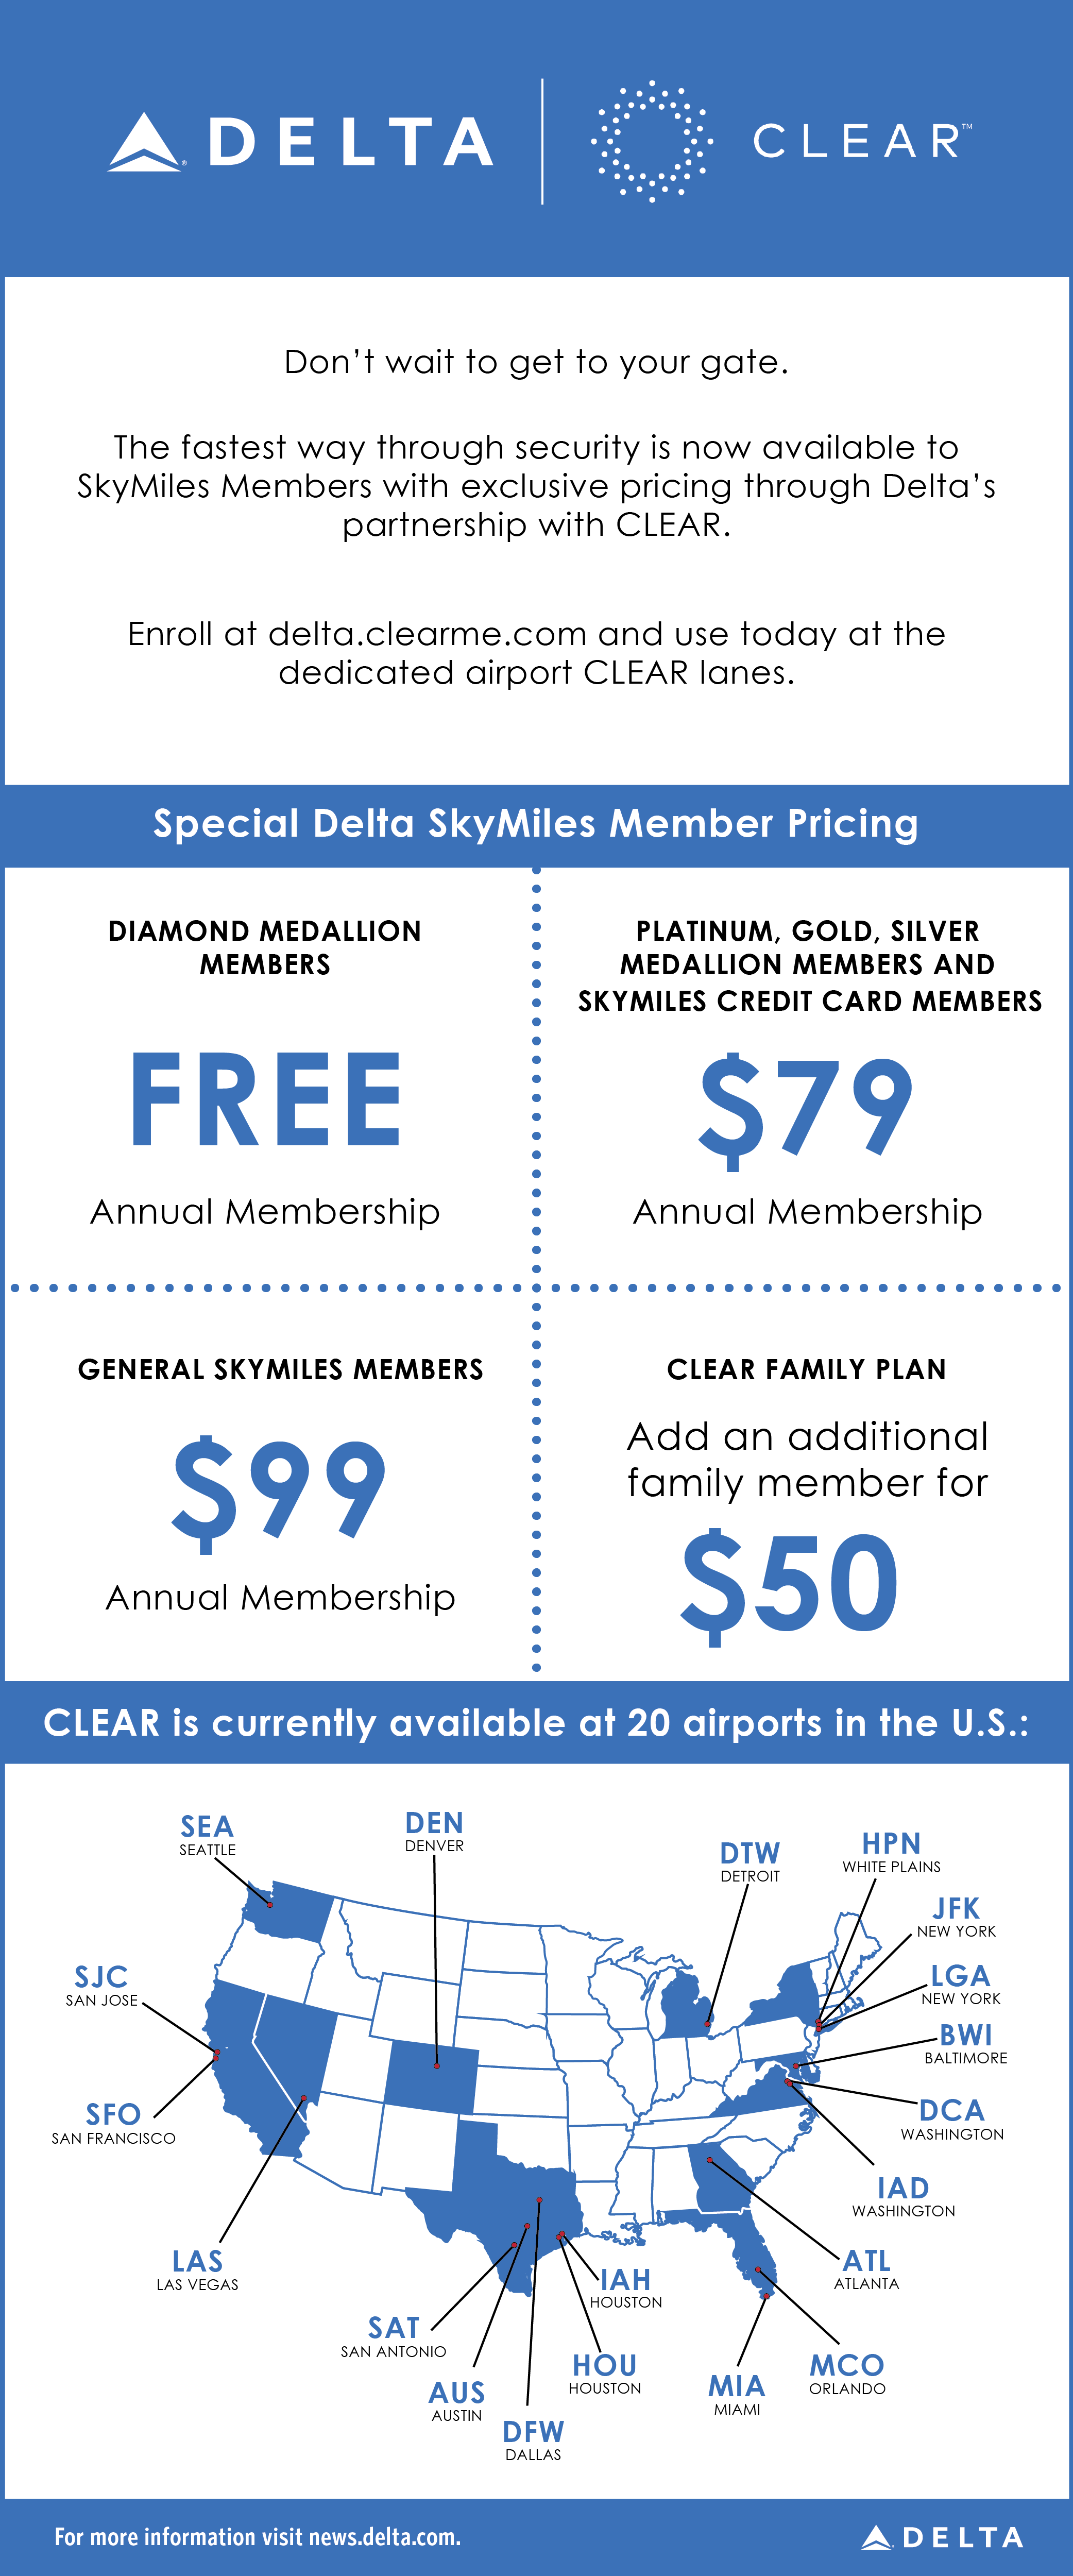 CLEAR partnership helps Delta expand efforts to ease security lines